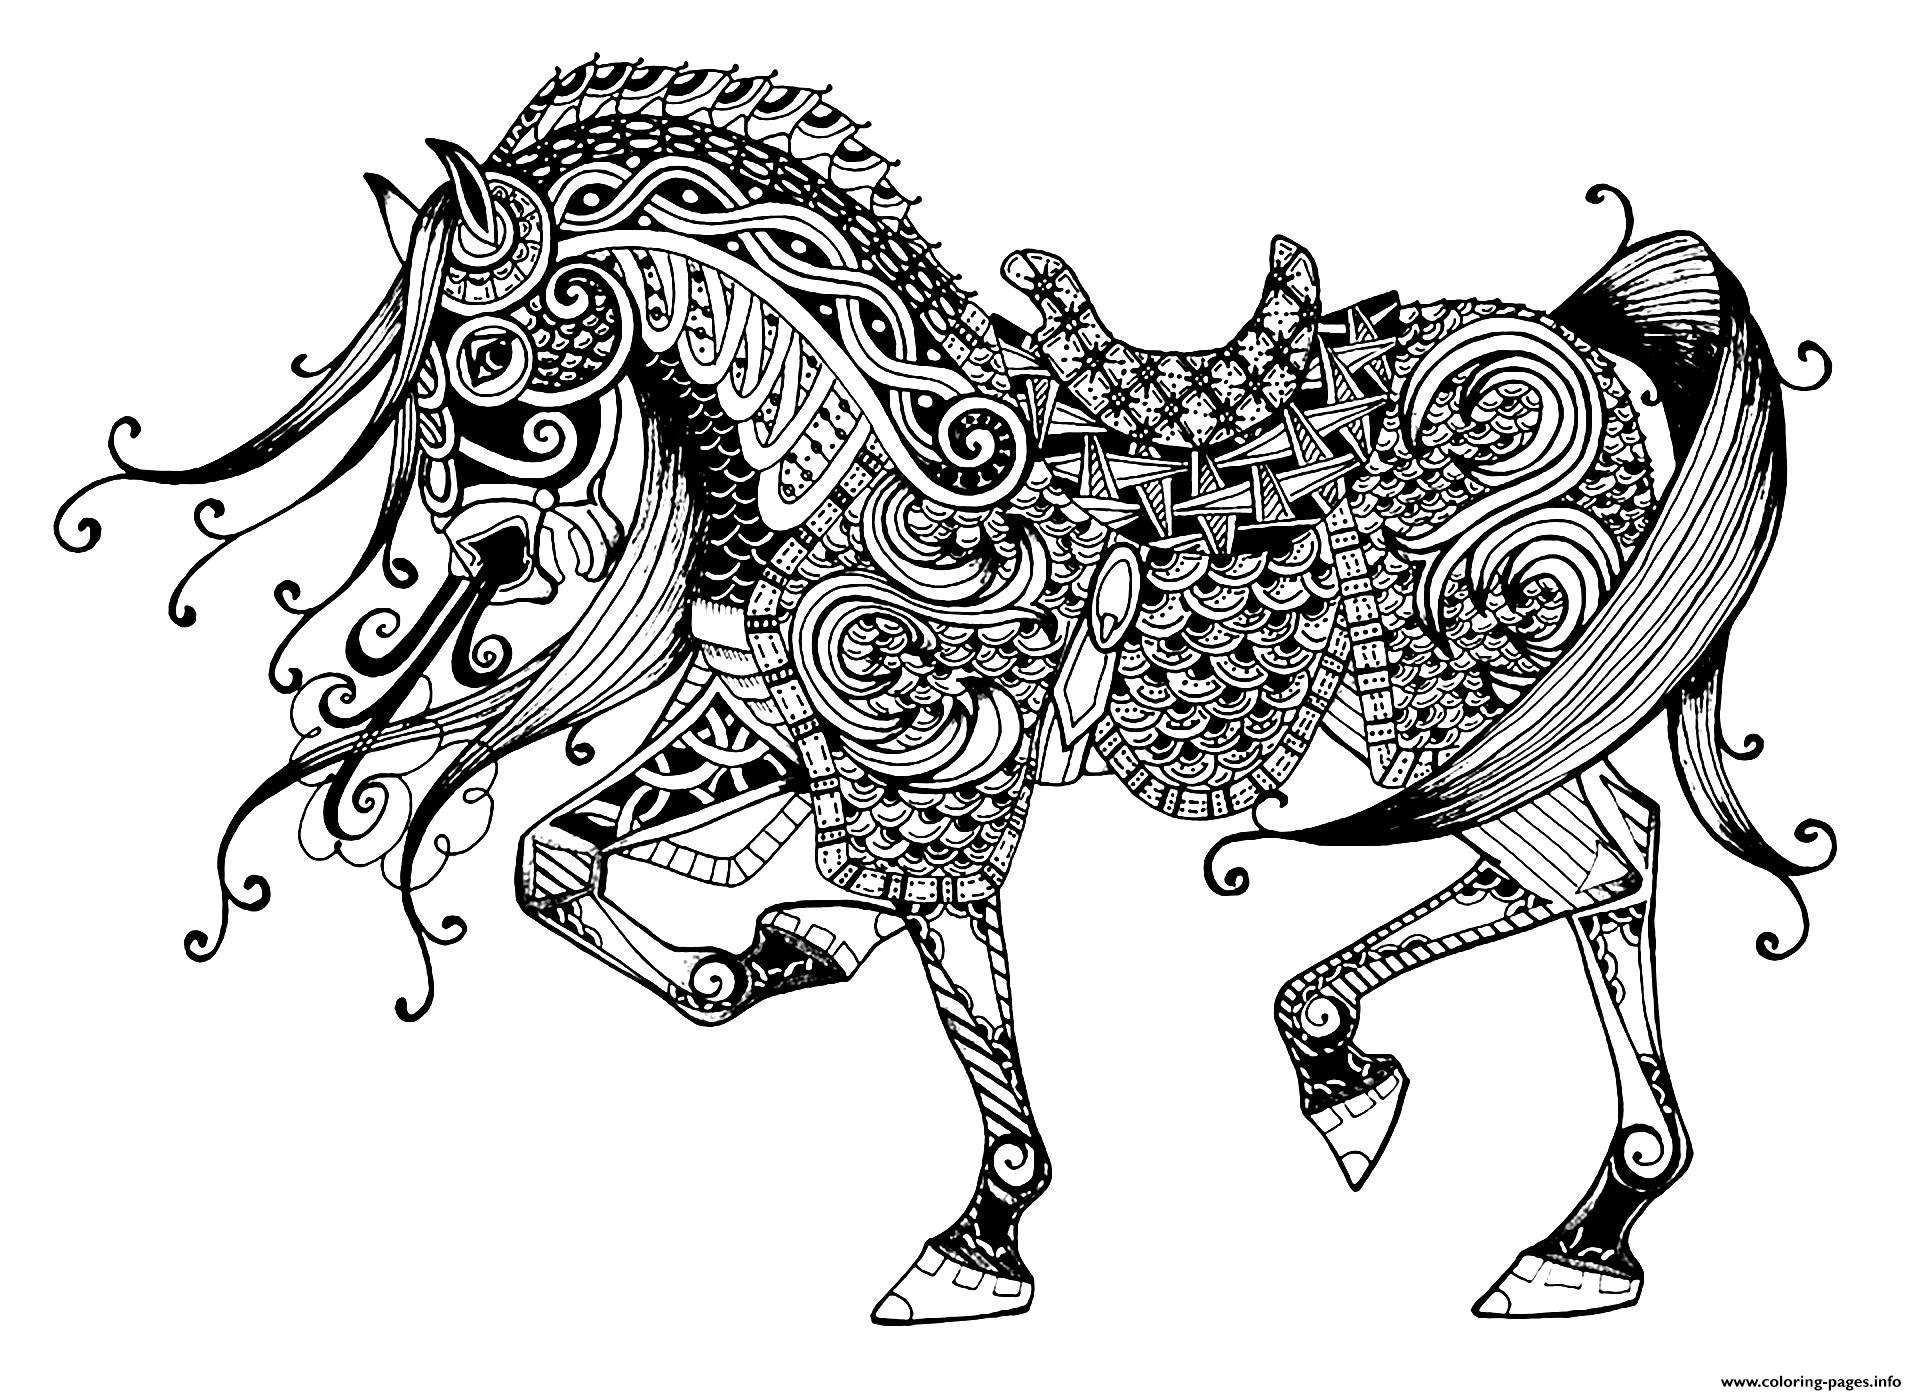 advanced majestic horse coloring pages print download - Horse Color Pages Printable Pages